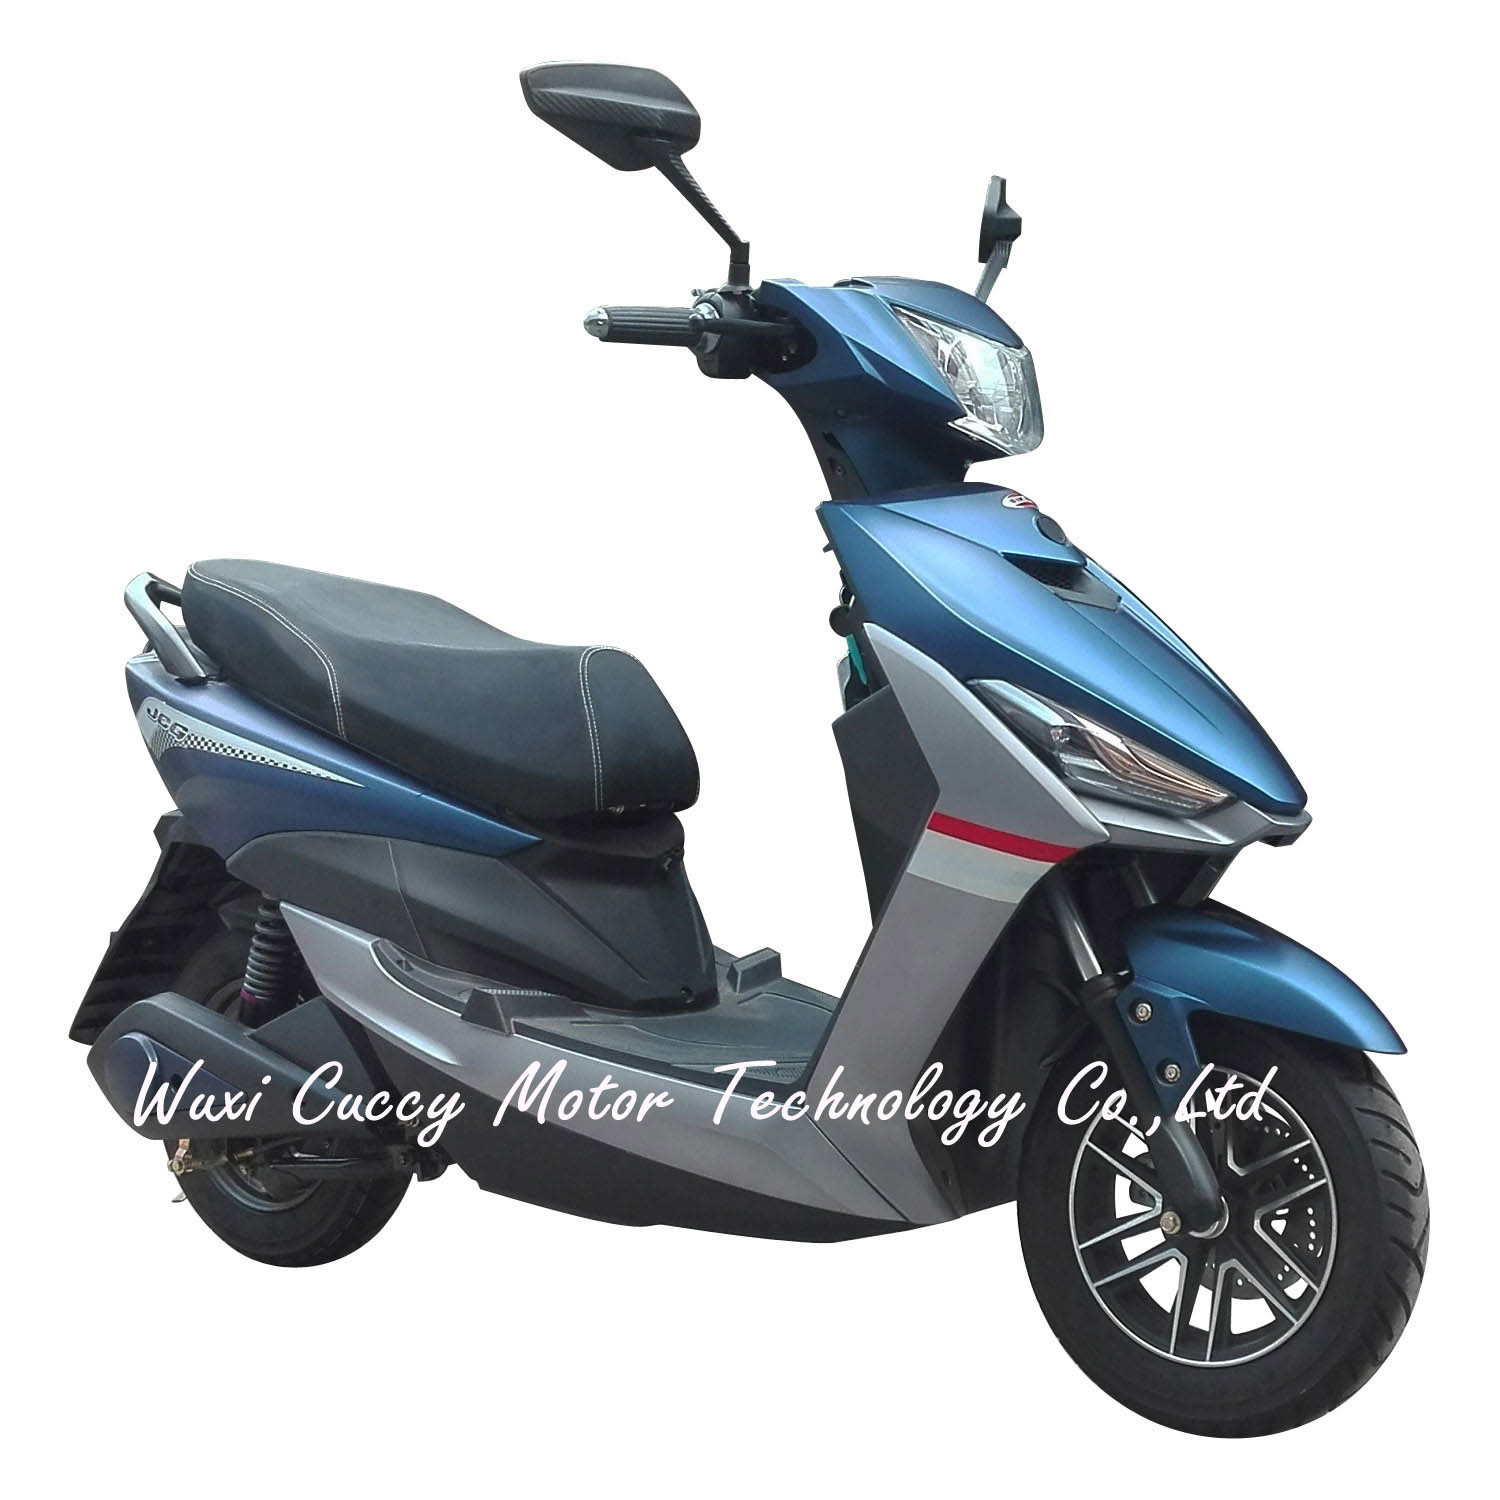 China Yamaha Electric Scooter, Yamaha Electric Scooter Manufacturers,  Suppliers   Made-in-China.com